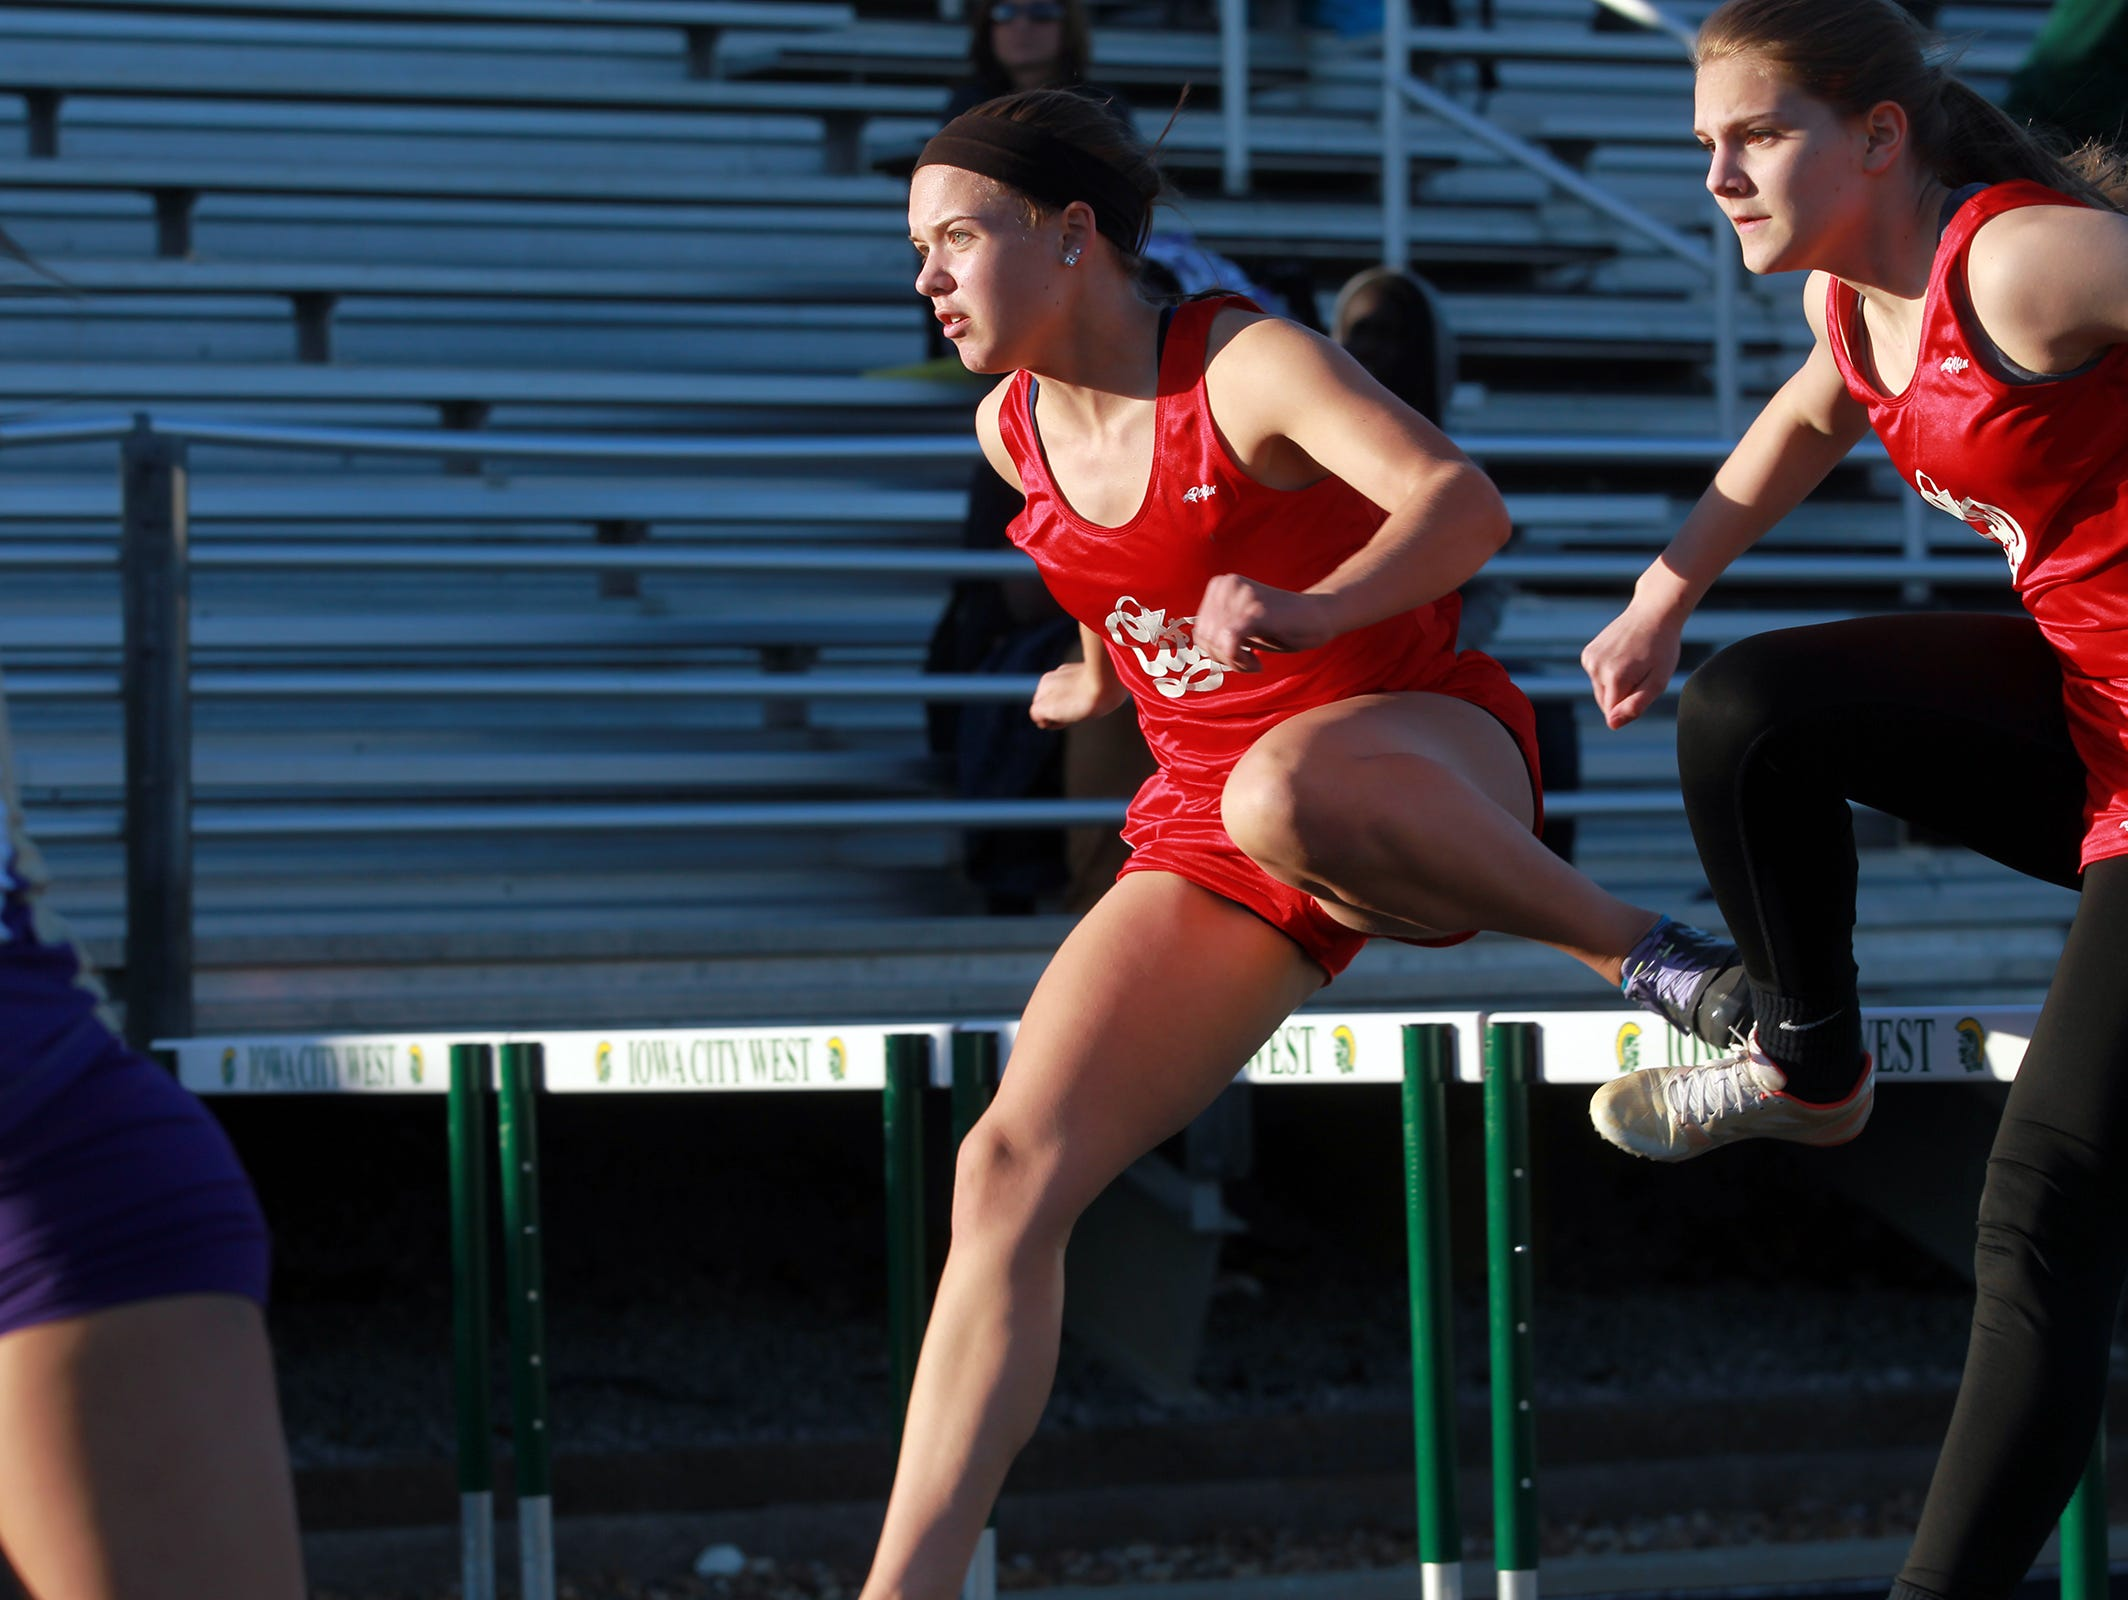 City High's Elke Windschitl, left, and Anna Roemerman compete in the 100 meter hurdles at the Women of Troy Relays at West High on Tuesday, March 31, 2015. David Scrivner / Iowa City Press-Citizen